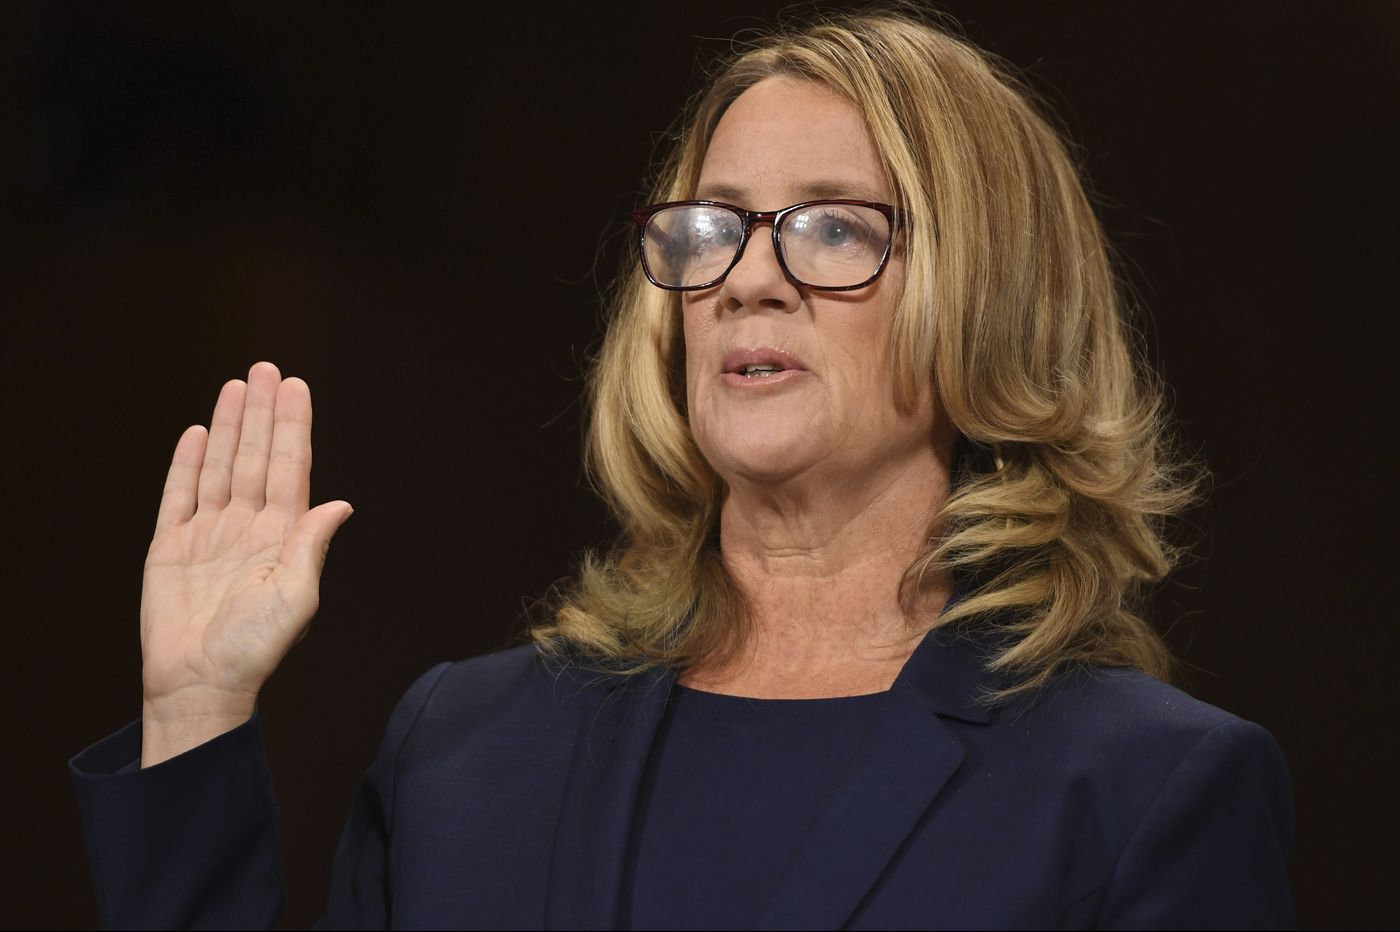 Christine Blasey Ford, Brett Kavanaugh, and the day the laughter stopped for America's privileged   Will Bunch